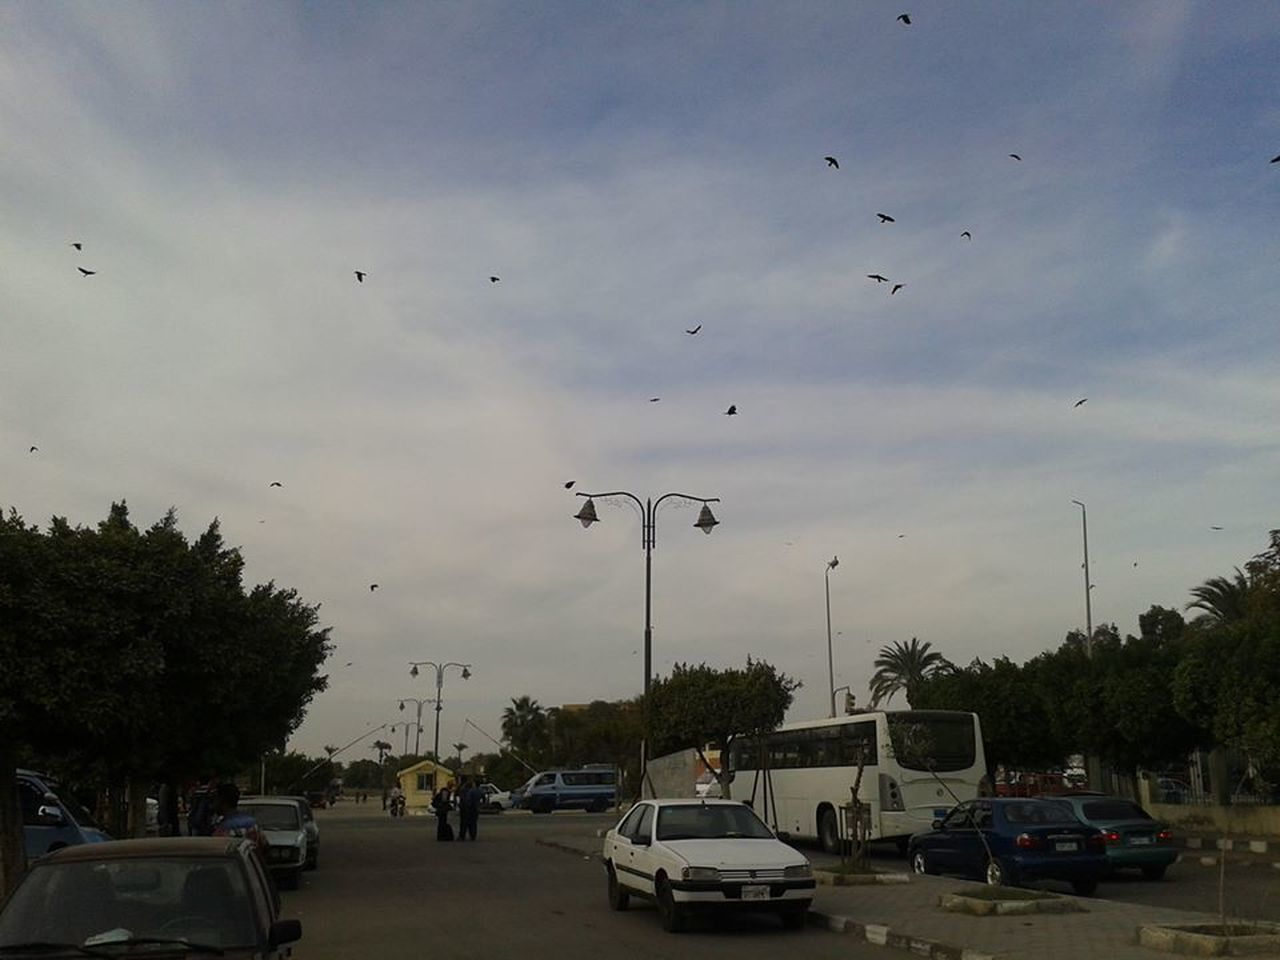 car, tree, sky, cloud - sky, land vehicle, bird, transportation, large group of animals, street, mode of transport, street light, animal themes, road, flying, built structure, outdoors, animals in the wild, day, architecture, nature, building exterior, city, no people